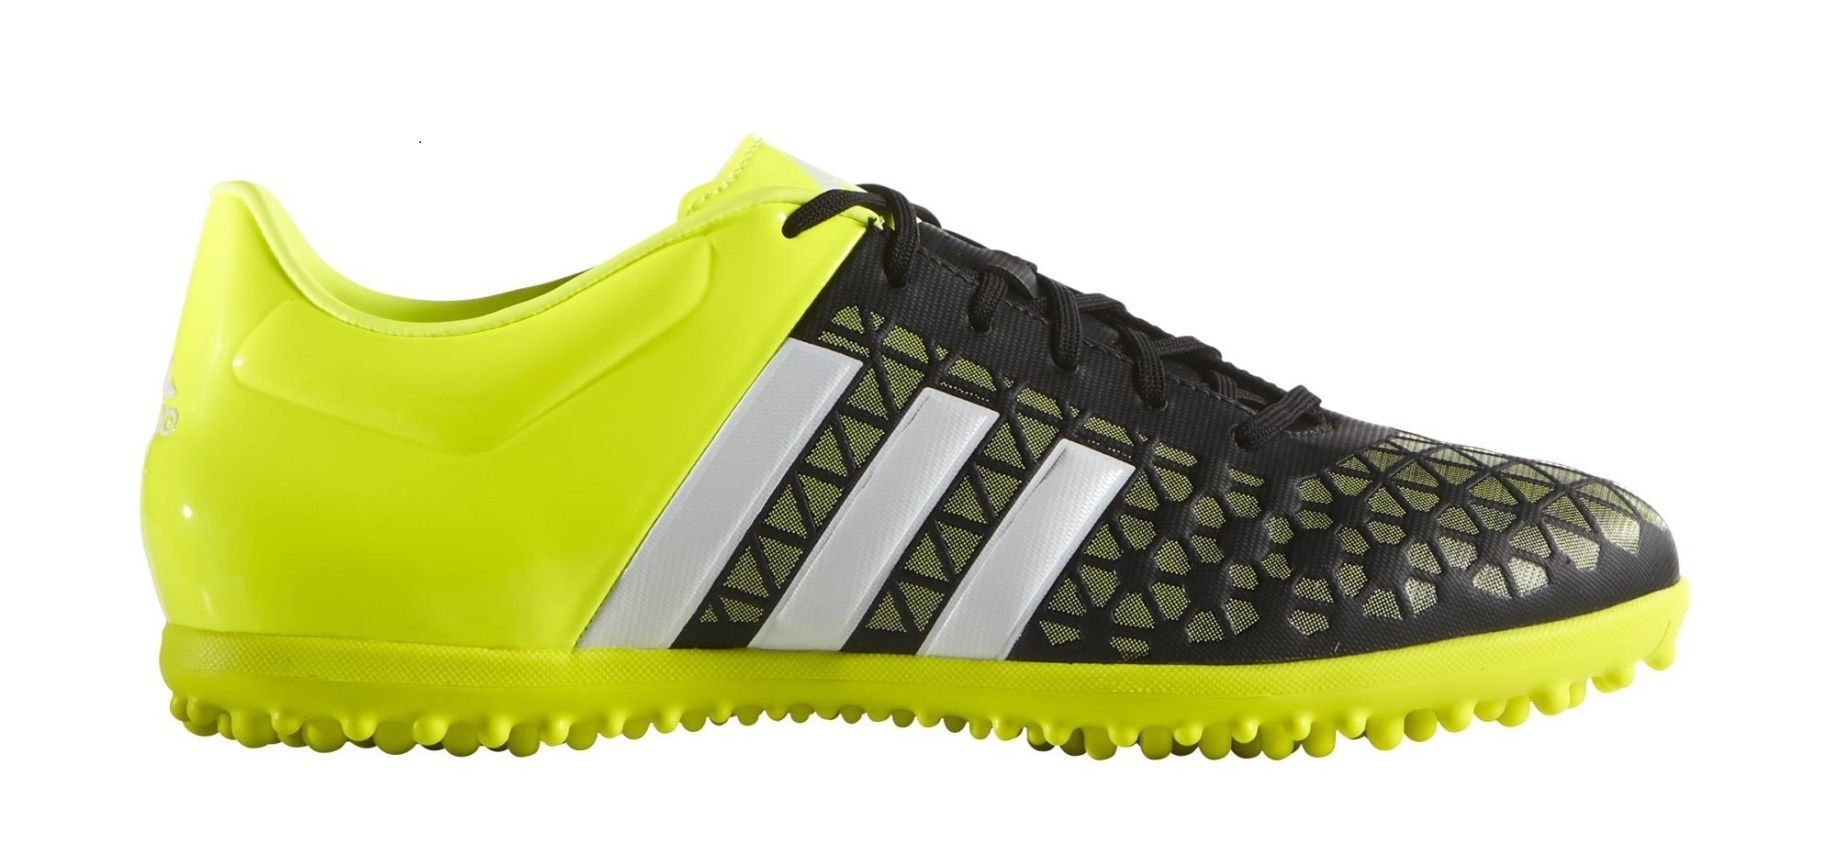 9f72a8c82d77 Shoes Soccer Adidas Ace 15.3 TF colore Black Yellow - Adidas - SportIT.com